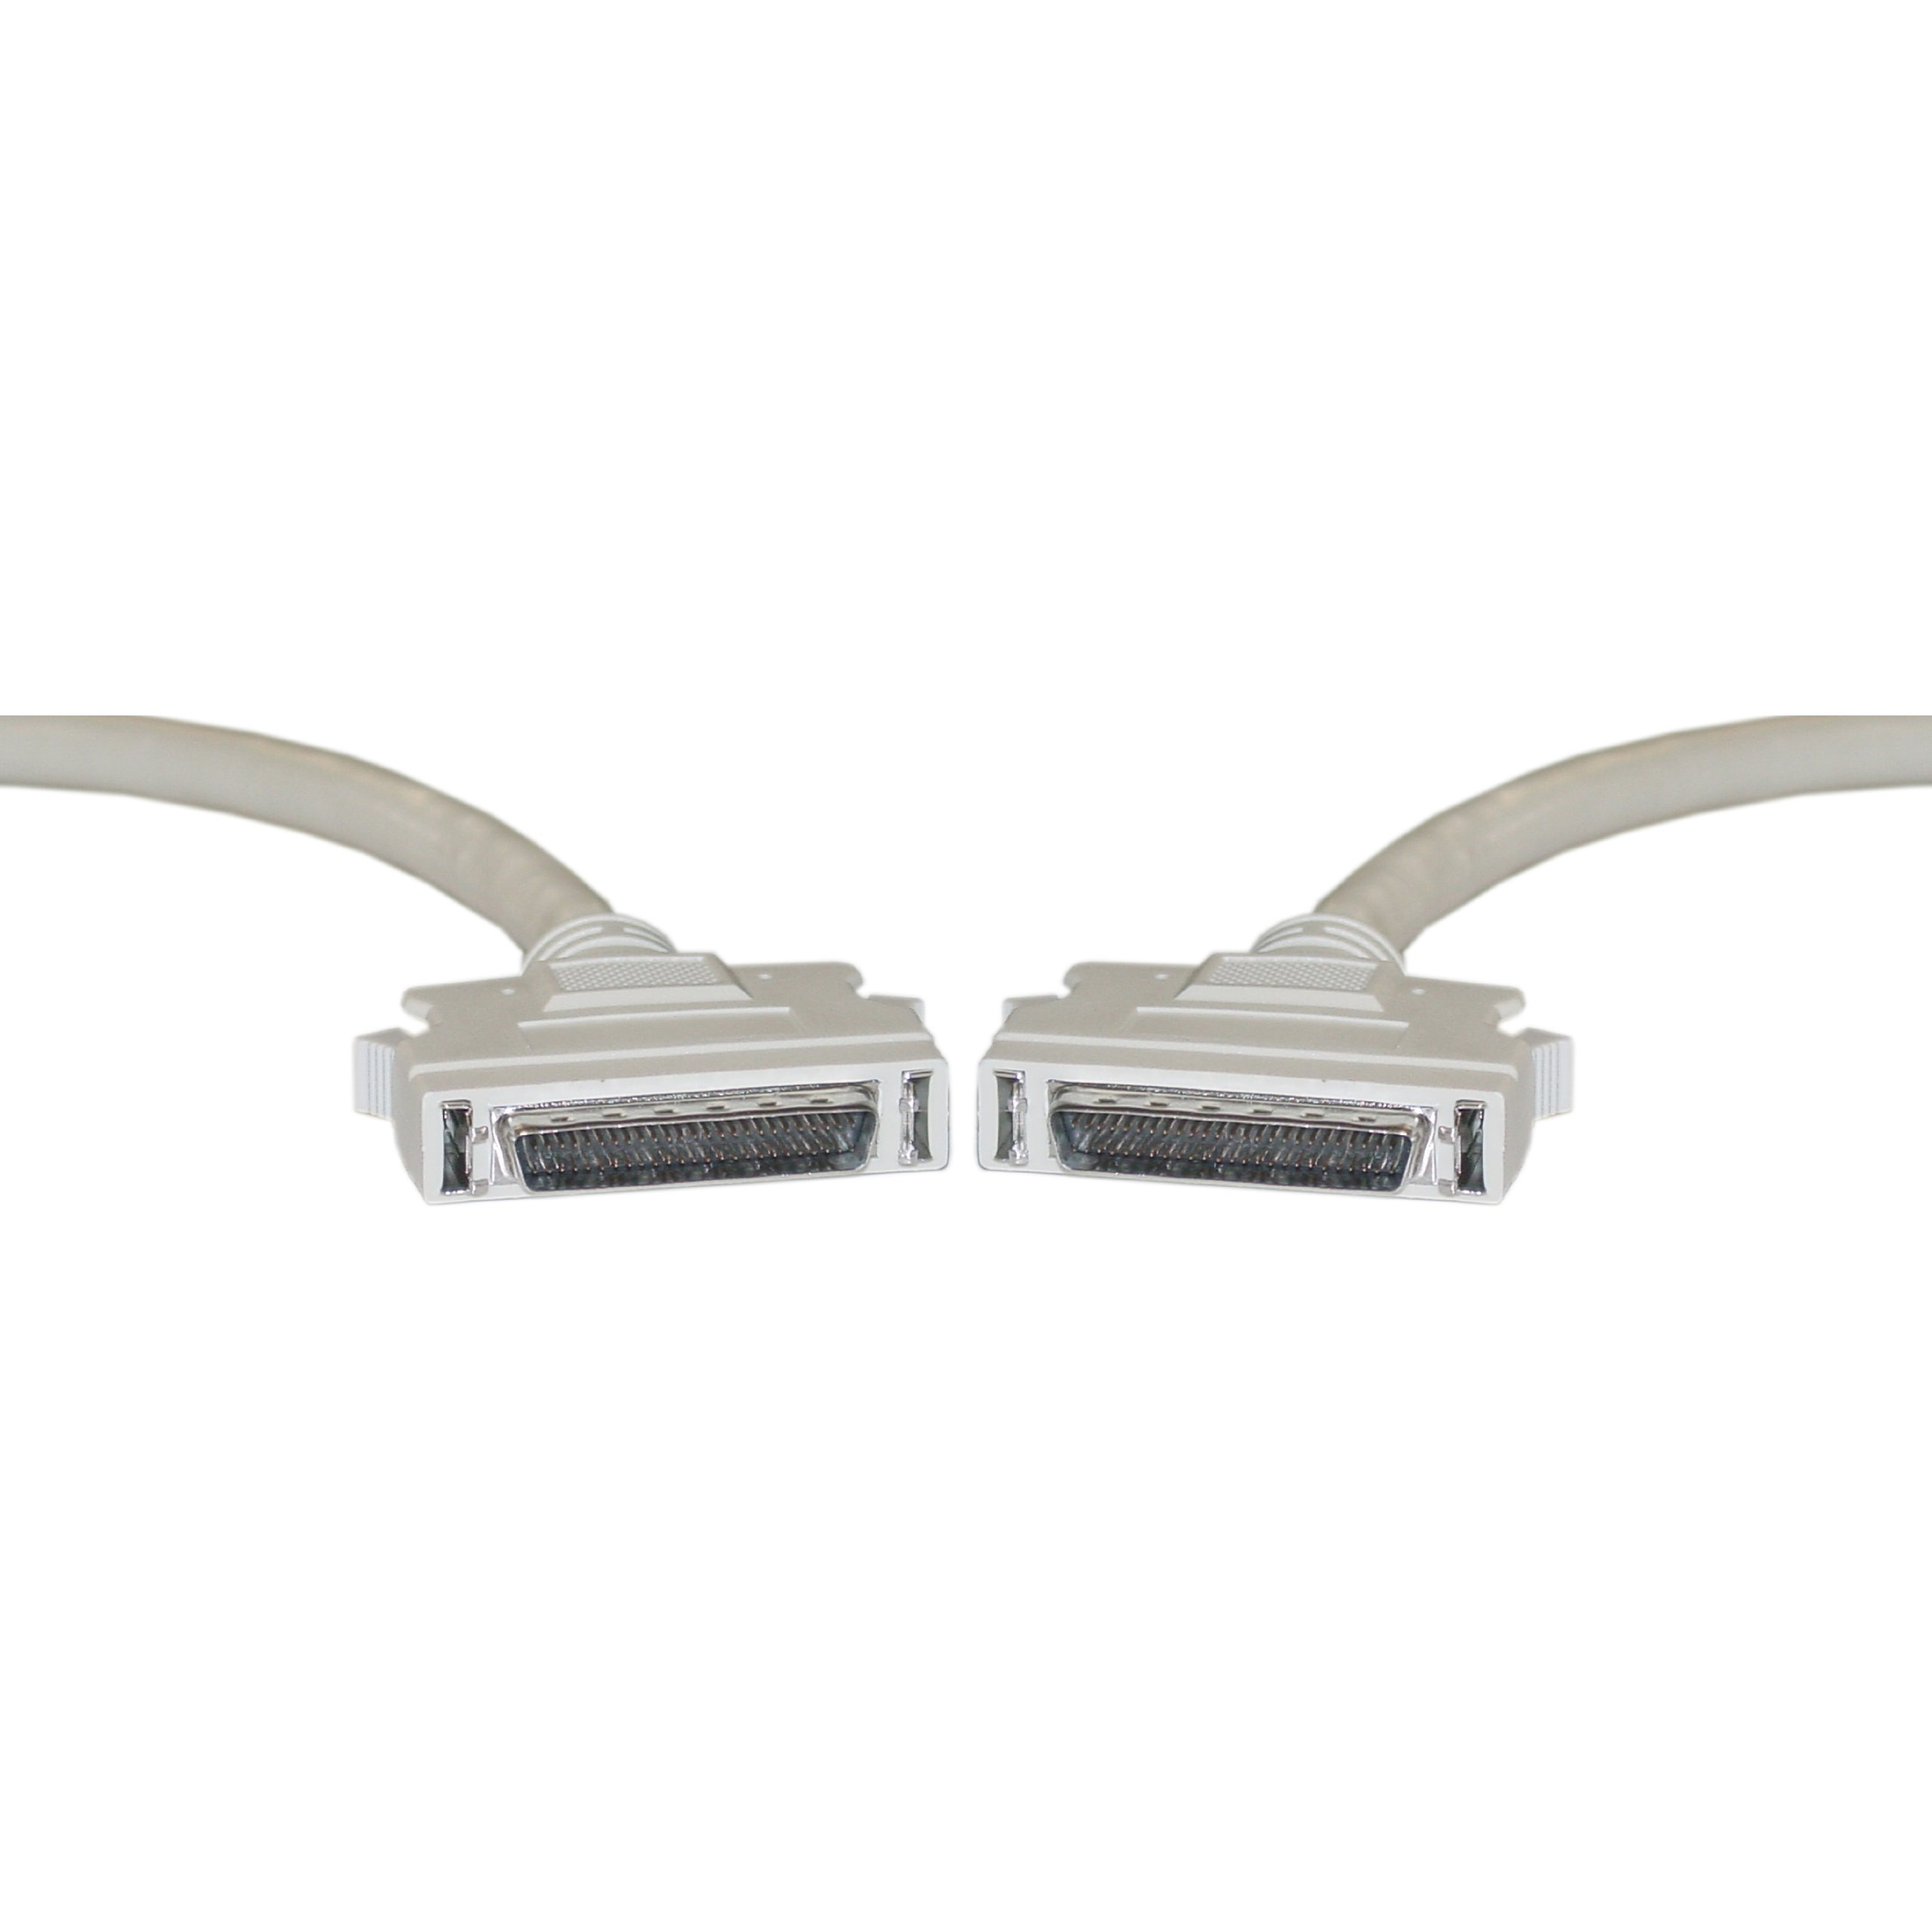 SCSI II Cable, HPDB50 (Half Pitch DB50) Male, 25 Twisted Pairs, 3 Foot by CableWholesale